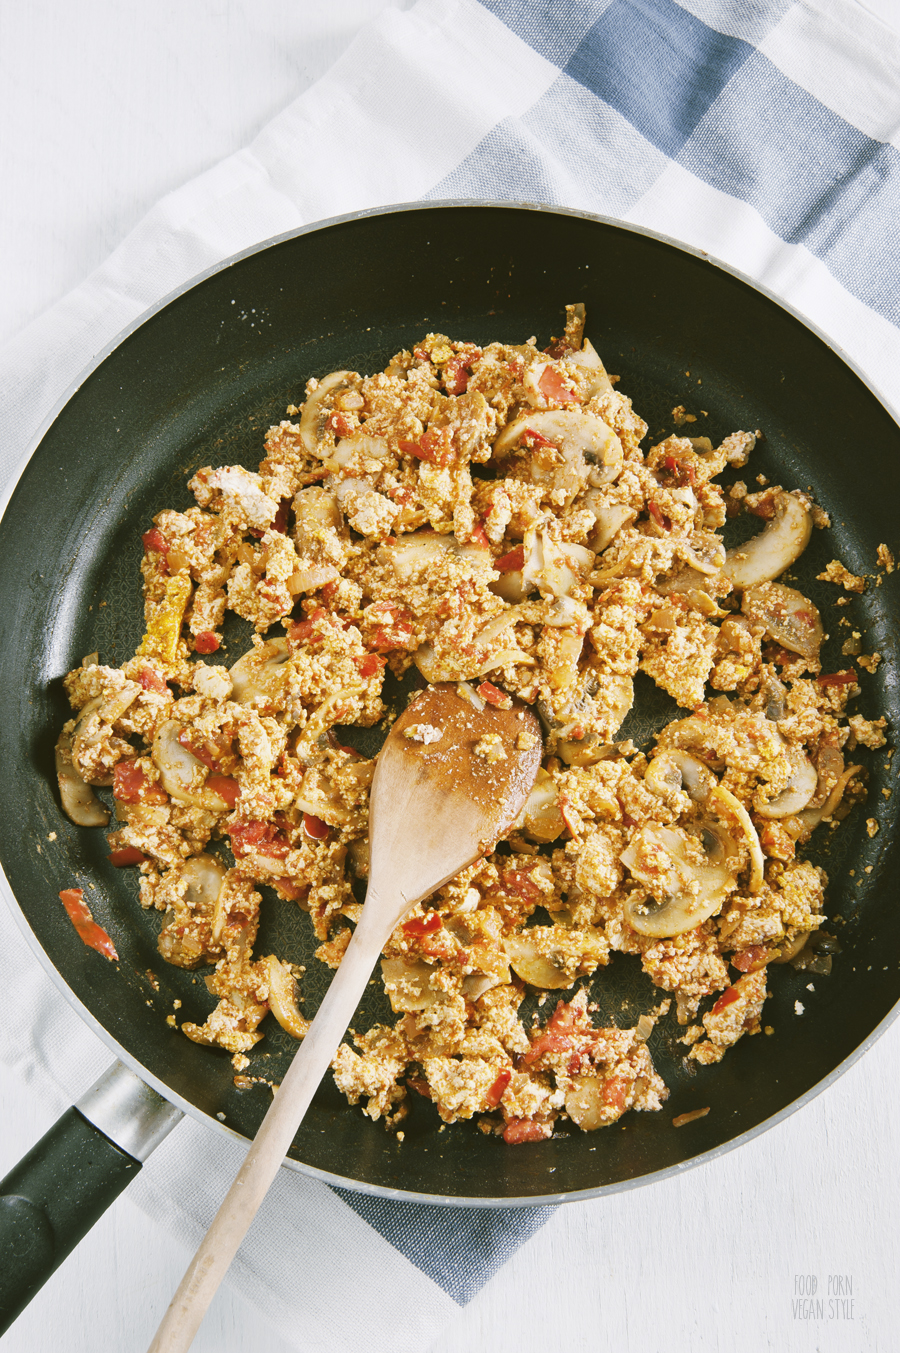 Tofu scramble with tomatoes and mushrooms